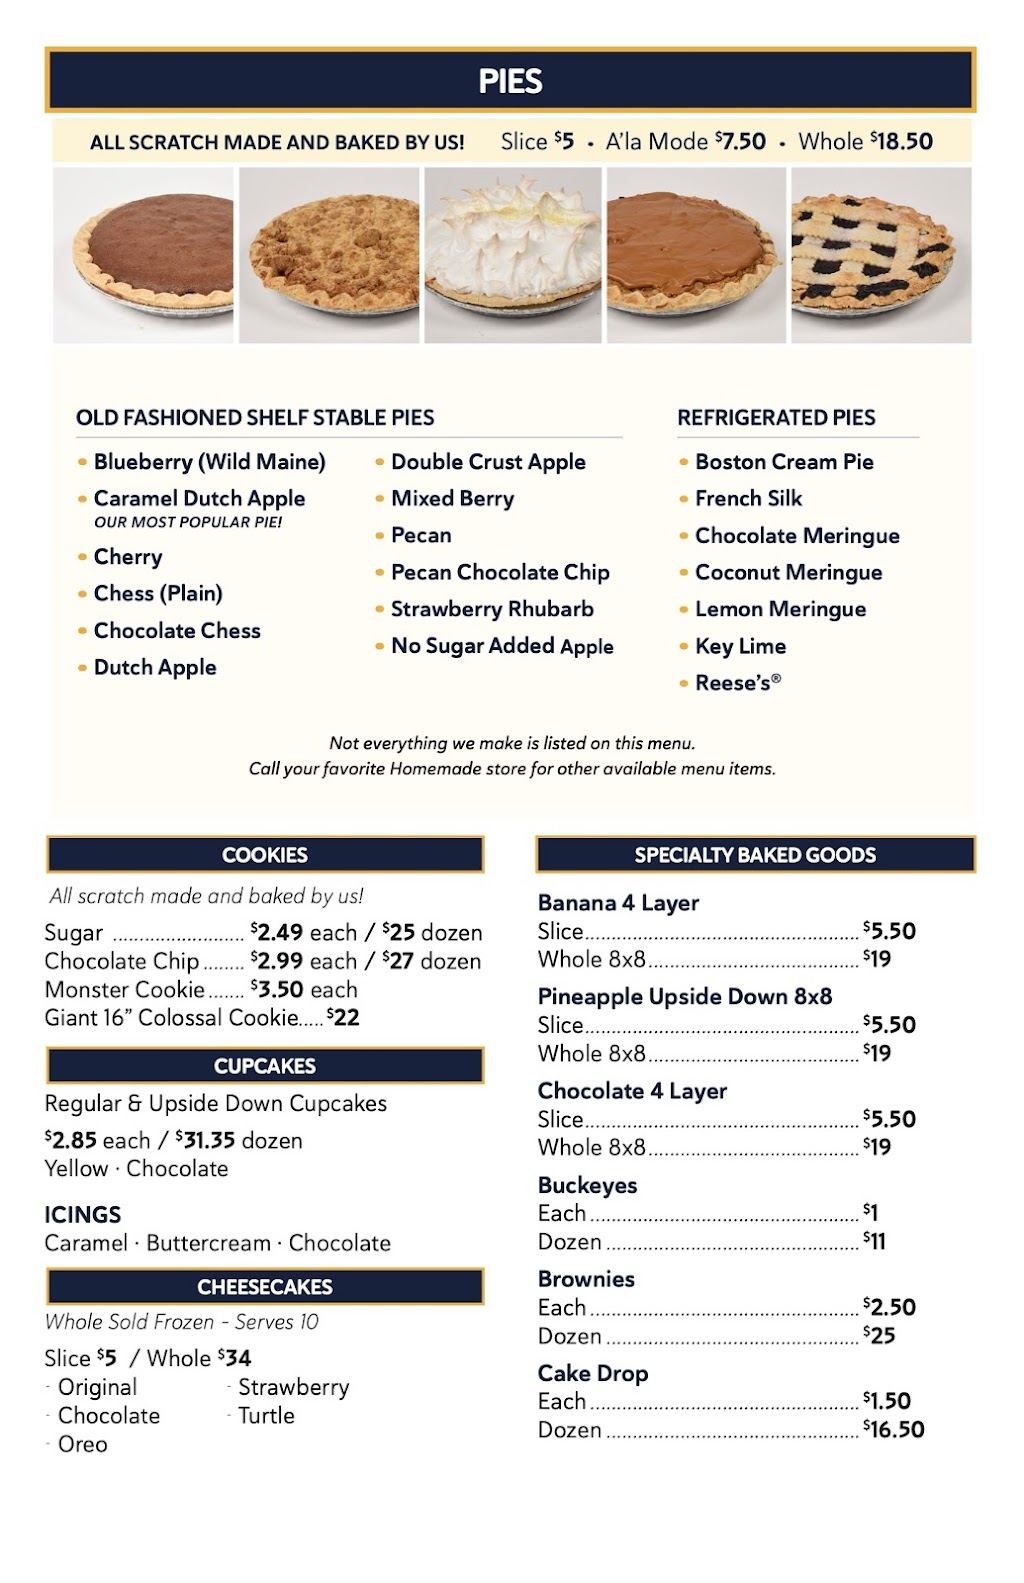 Homemade Ice Cream & Bakery Café   restaurant   10875 N Michigan Rd, Zionsville, IN 46077, USA   3172109496 OR +1 317-210-9496